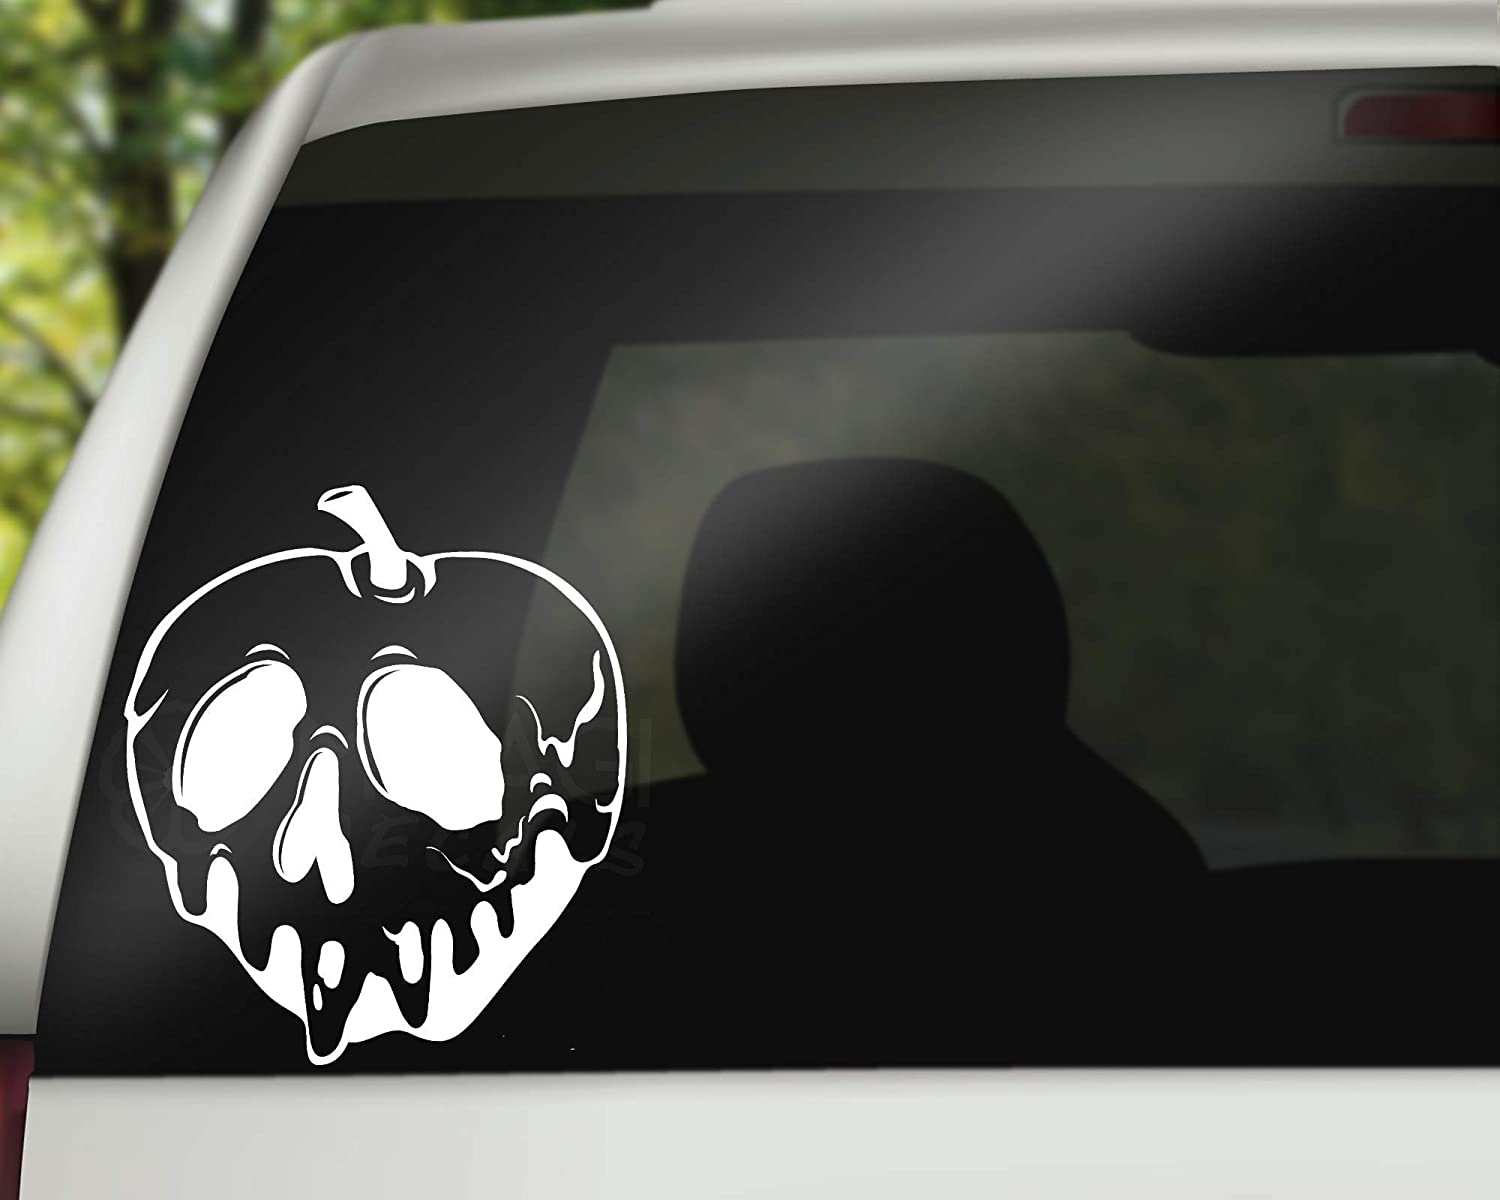 Poison Apple Decal, Decal For Car, Wall or Laptop, Gift